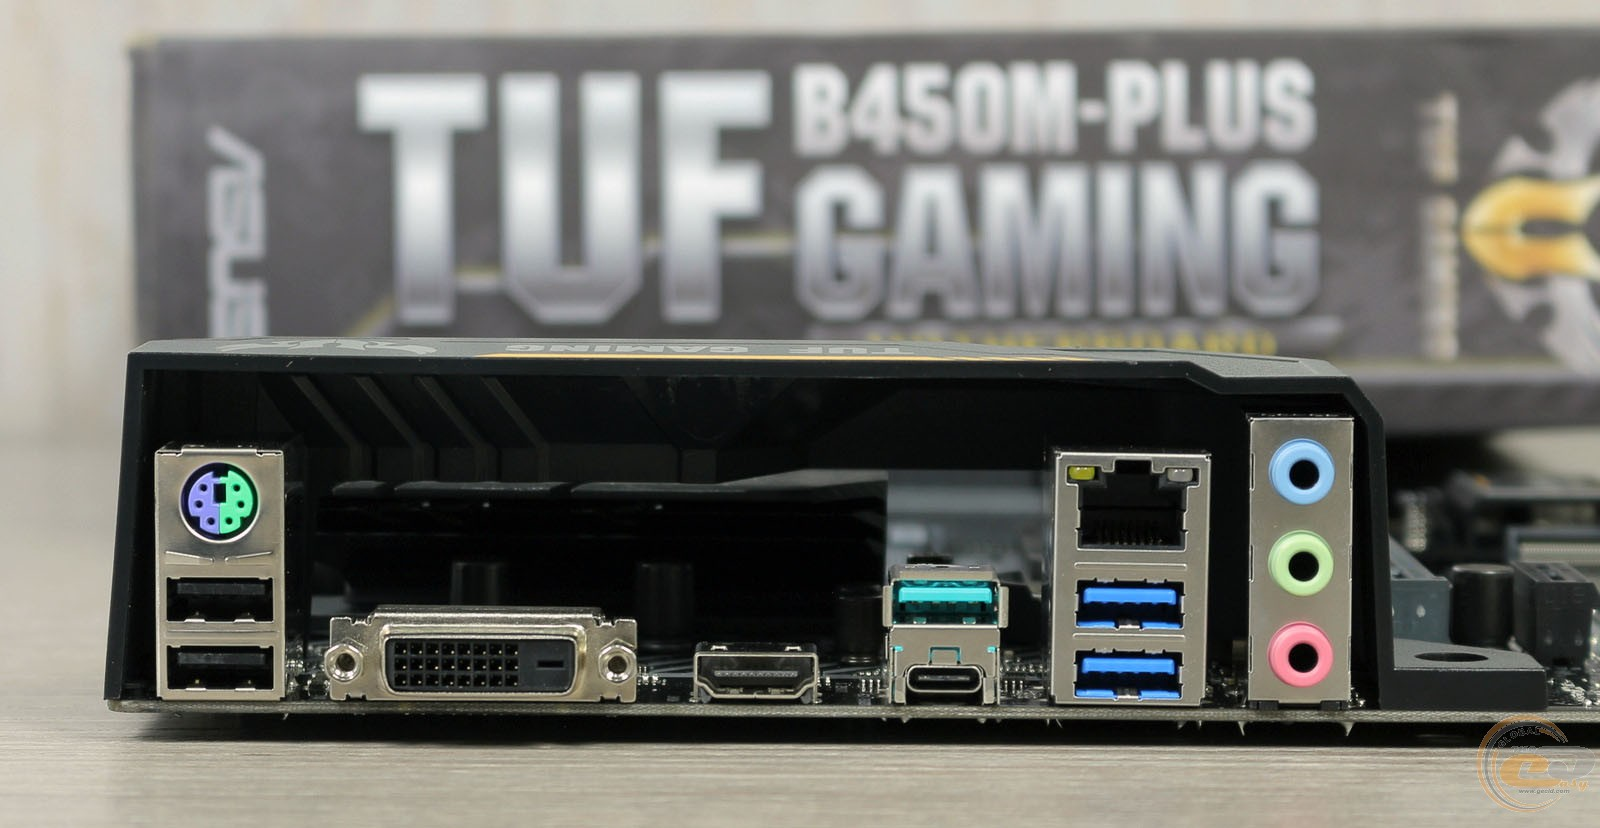 ASUS TUF B350M-PLUS GAMING интерфейсная панель